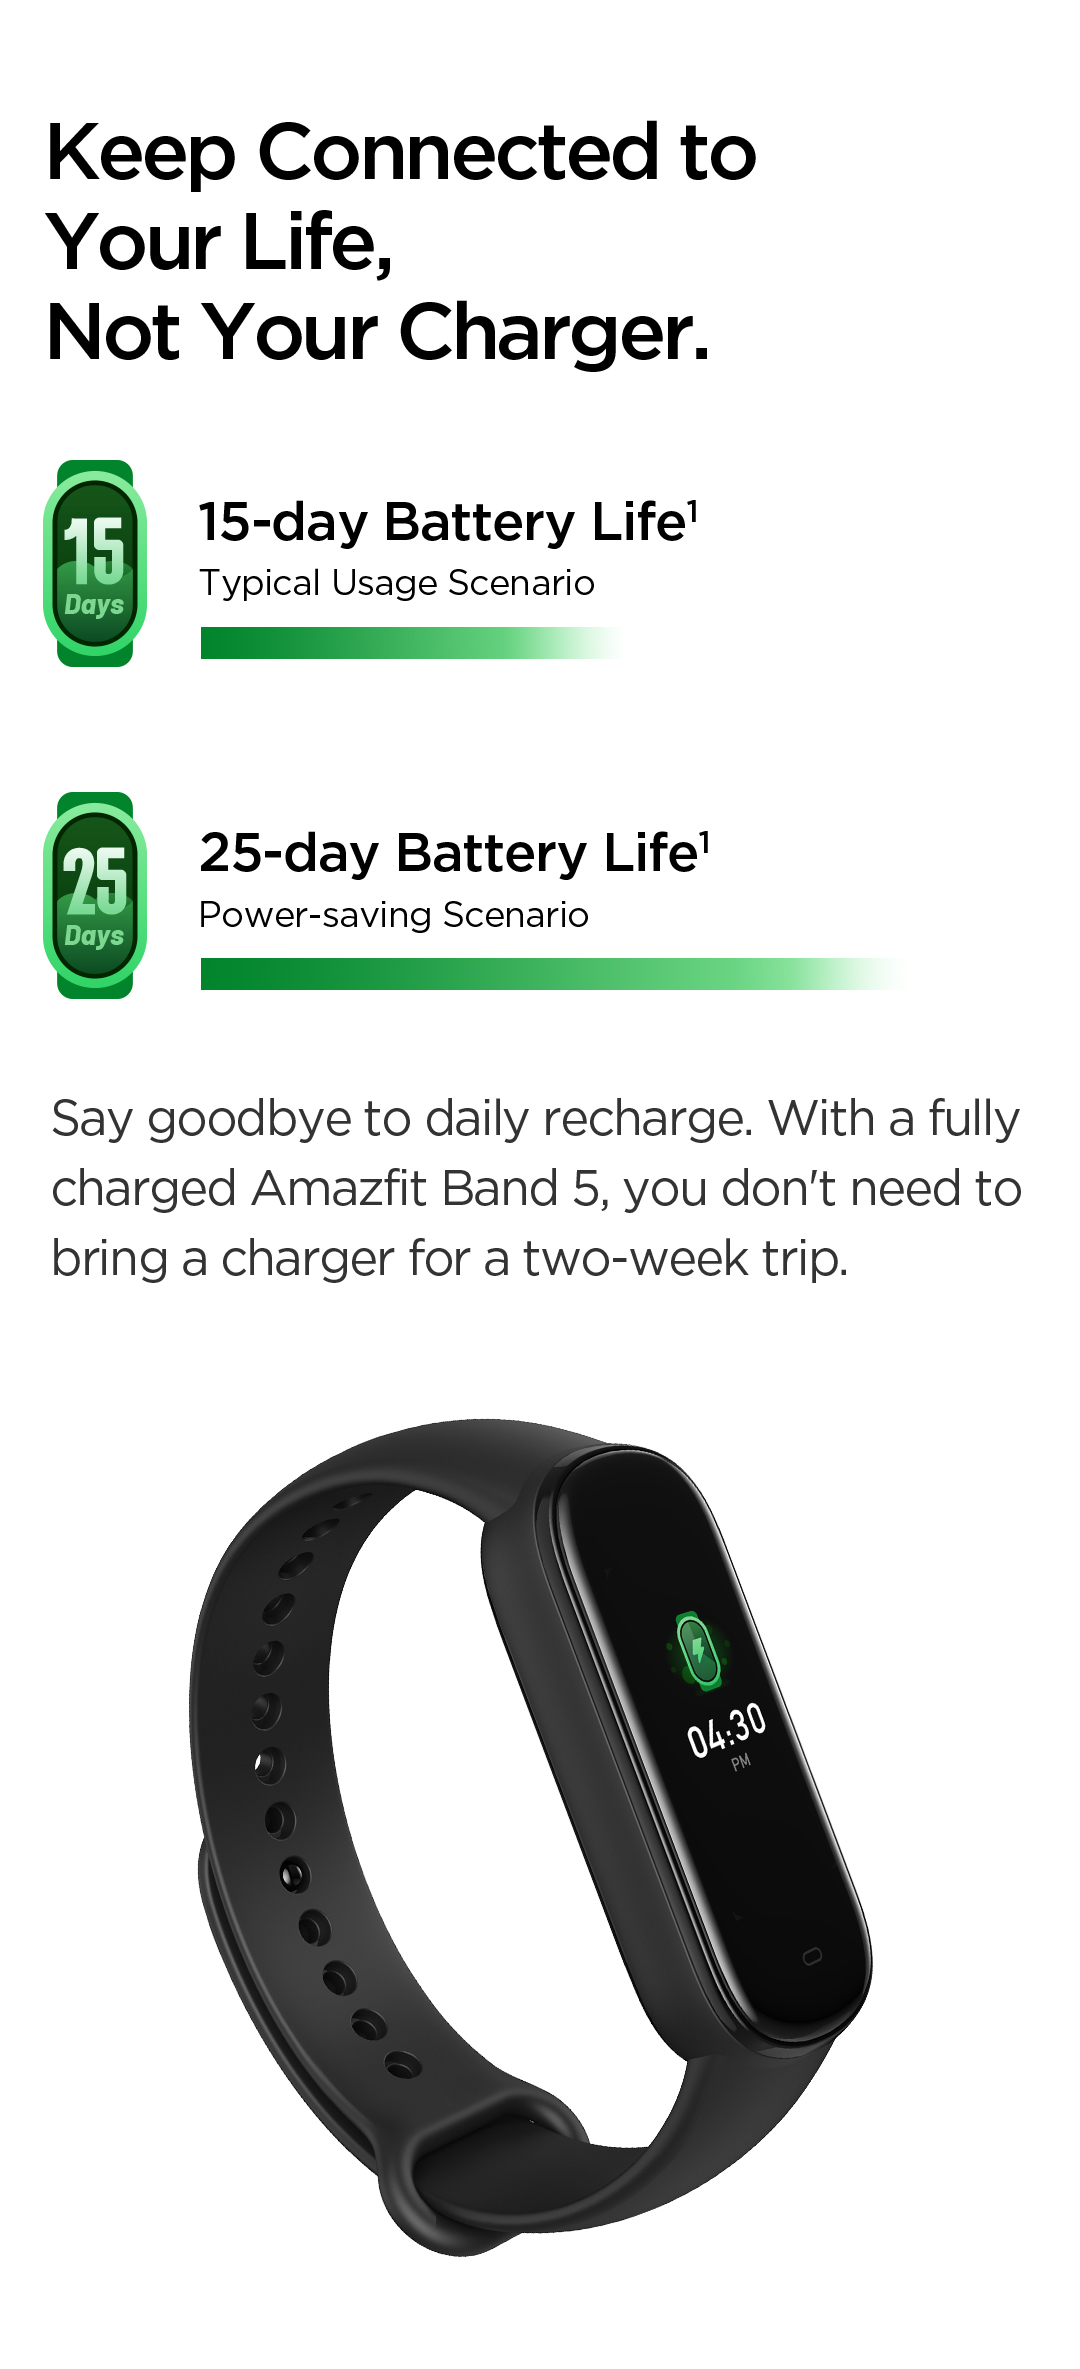 Amazfit Band 5 Battery Life - 15 Days for common usage, 25 days for power-saving mode